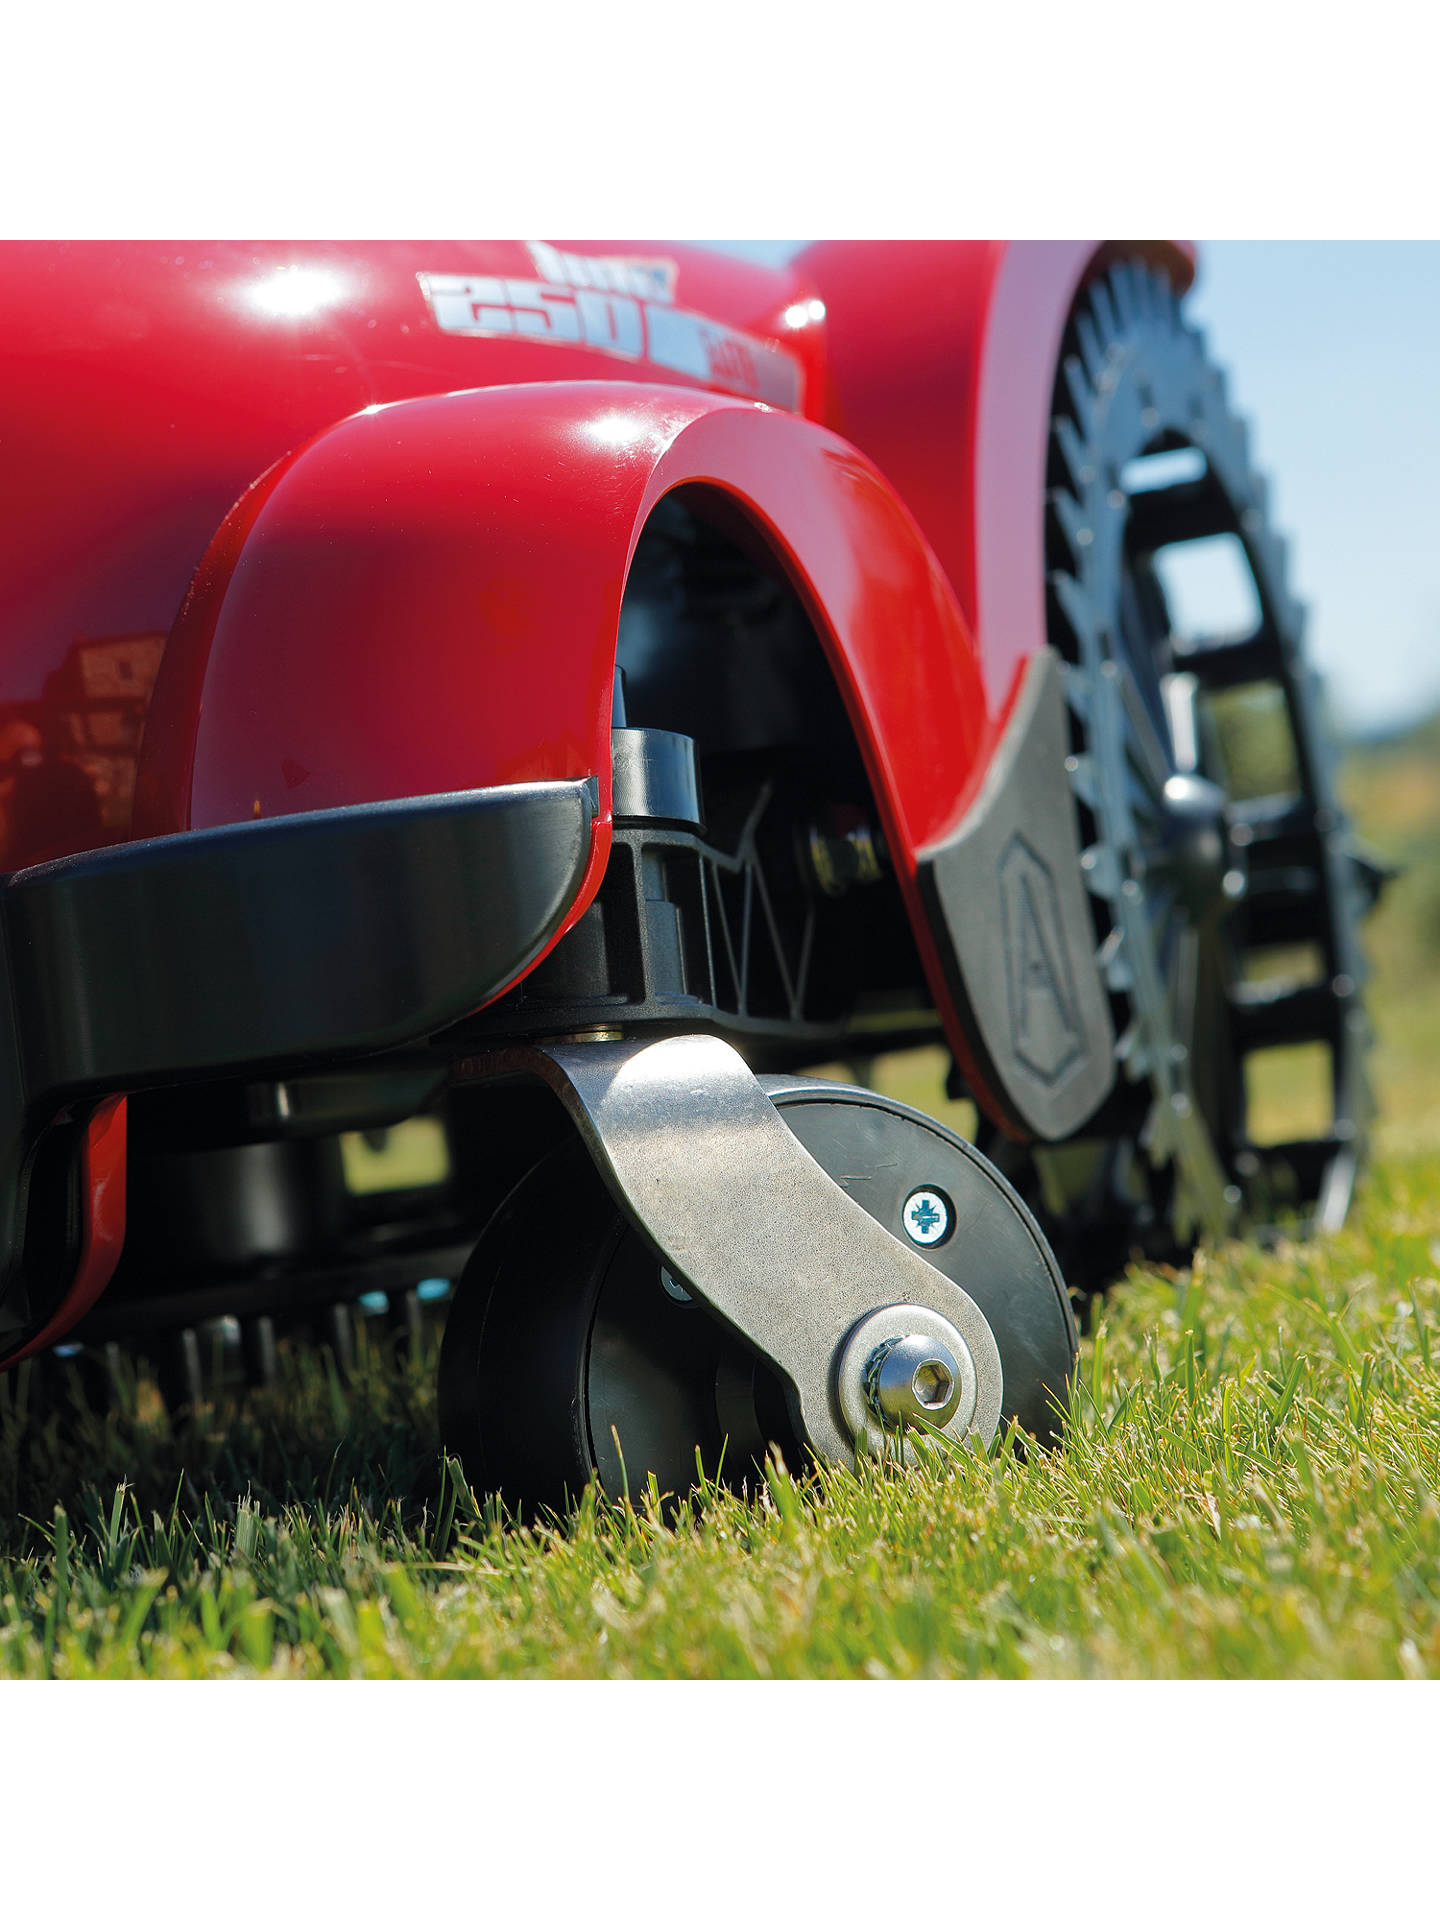 Buy Ambrogio L250i Elite S Plus Robotic Self-Propelled Lawn Mower, 29cm, Red Online at johnlewis.com